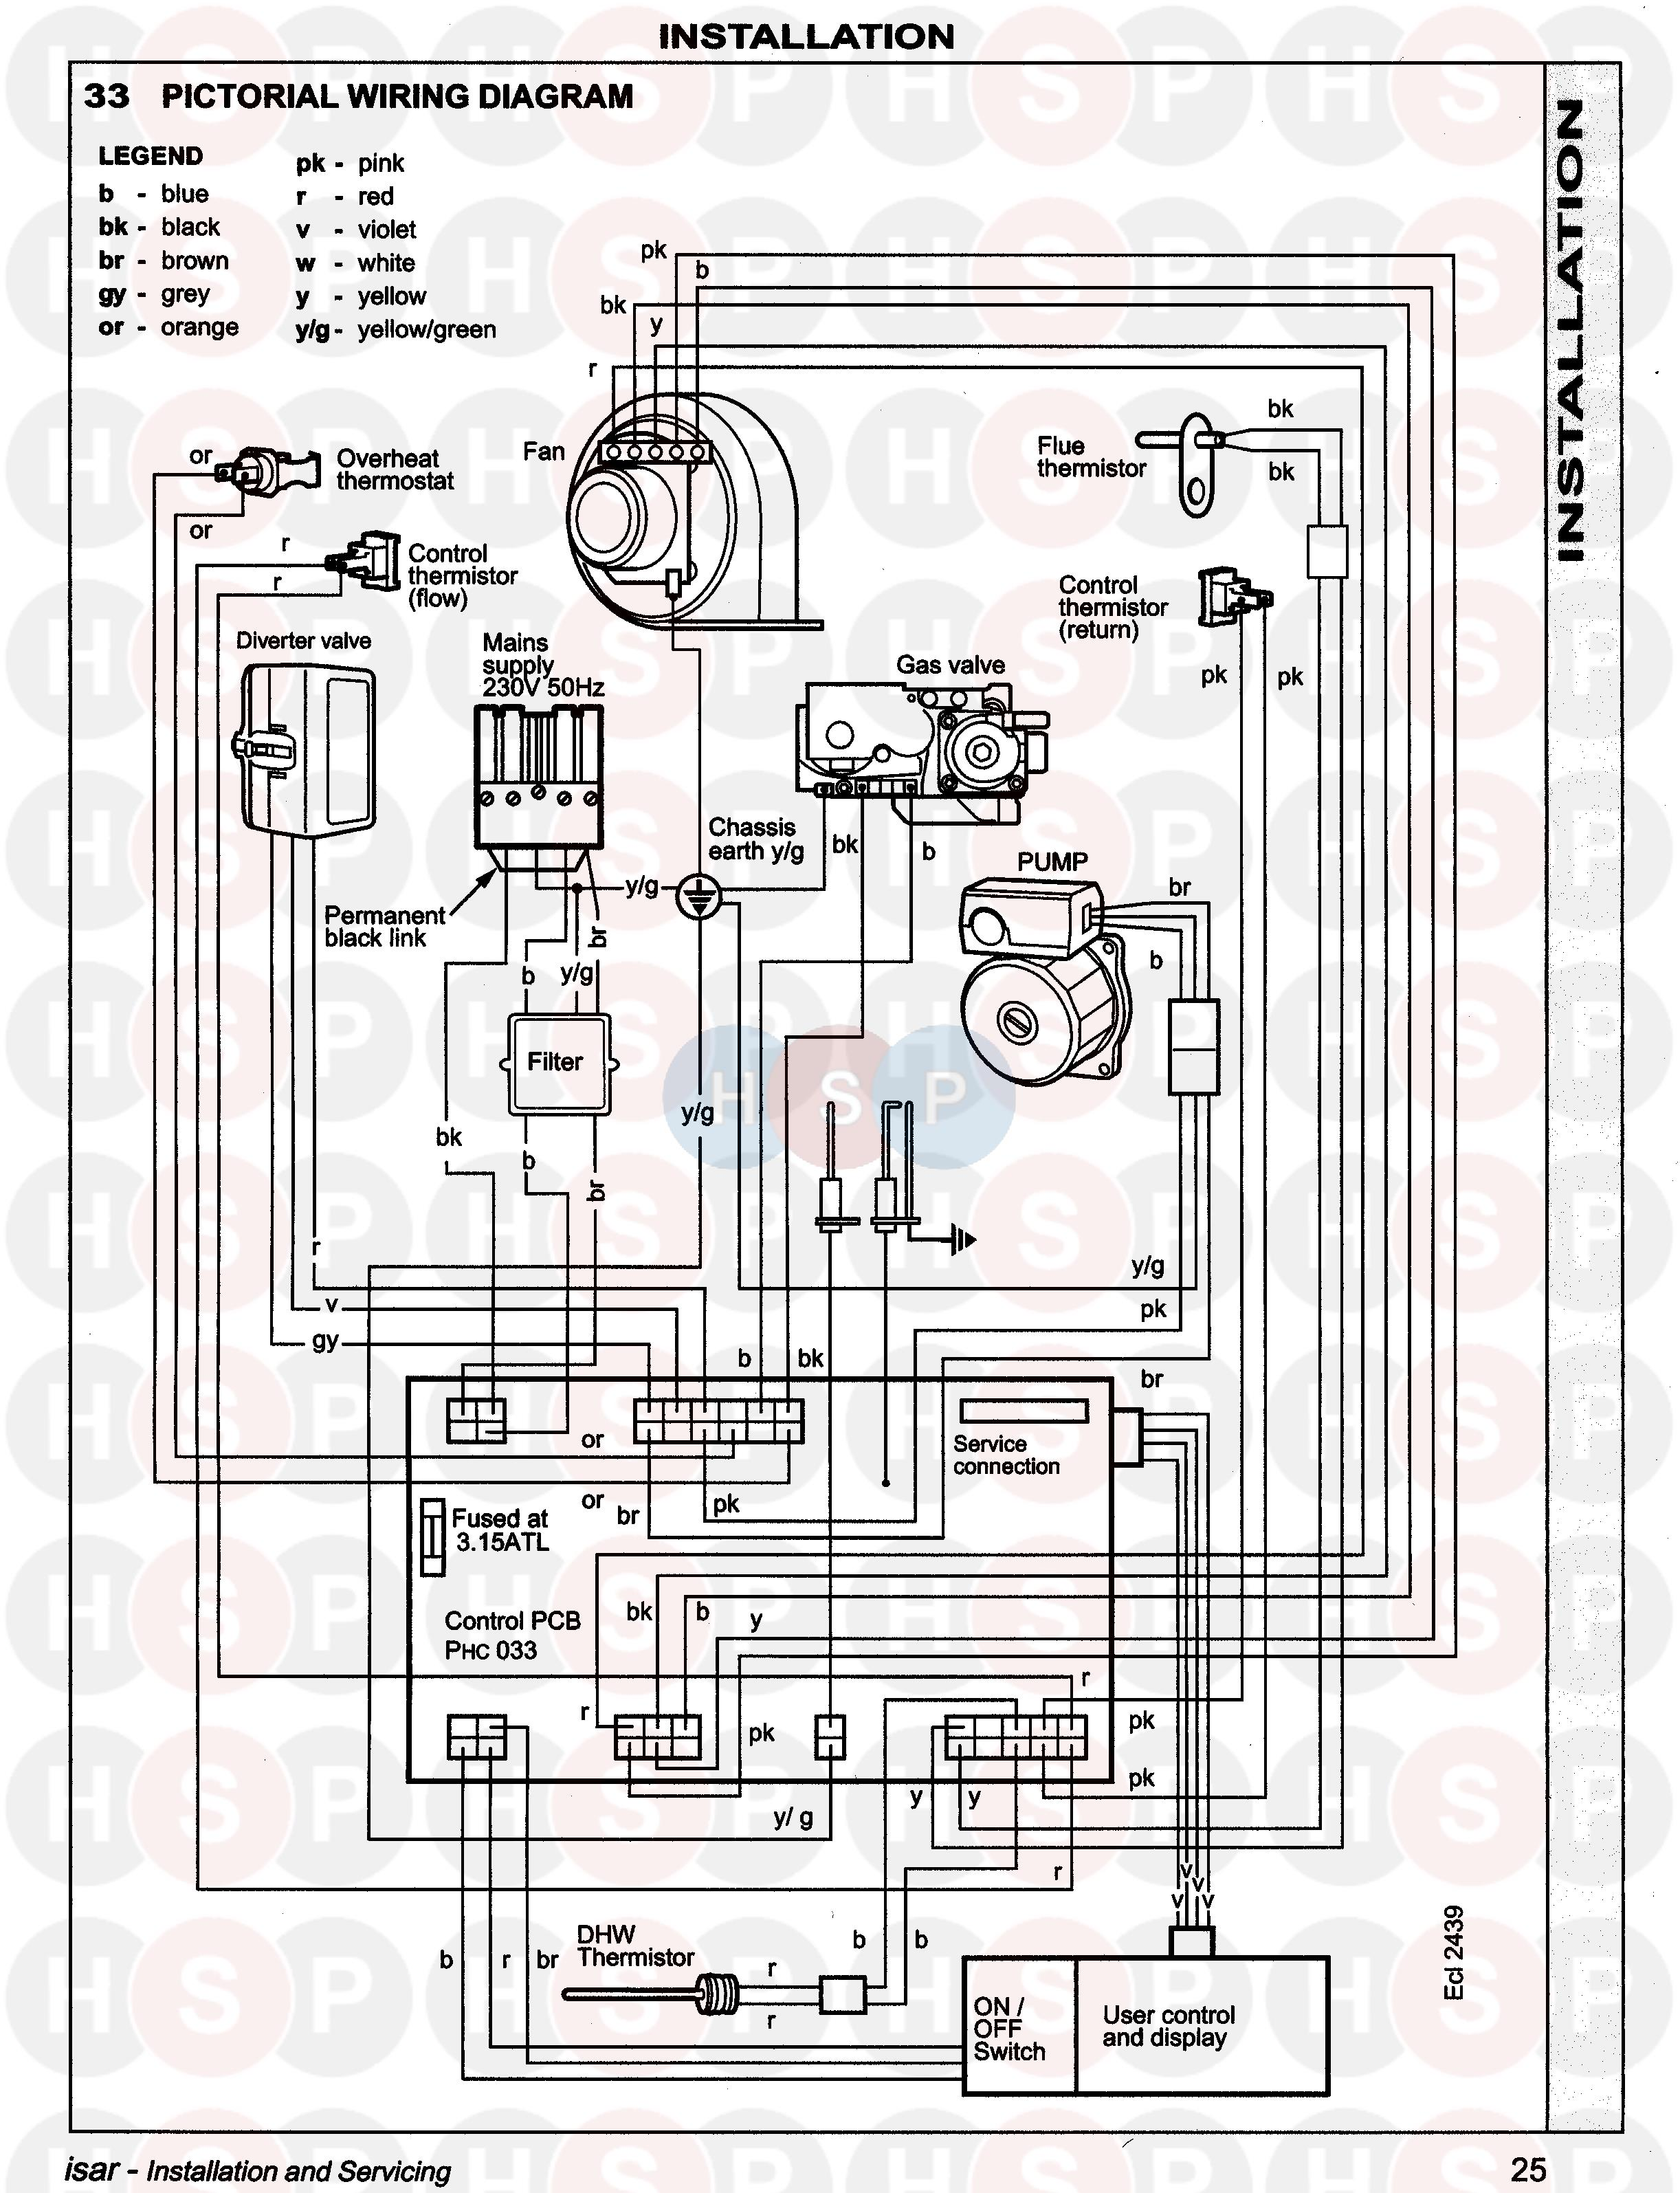 Outstanding Wire Diagram For Pcb Inspiration - Electrical and Wiring ...